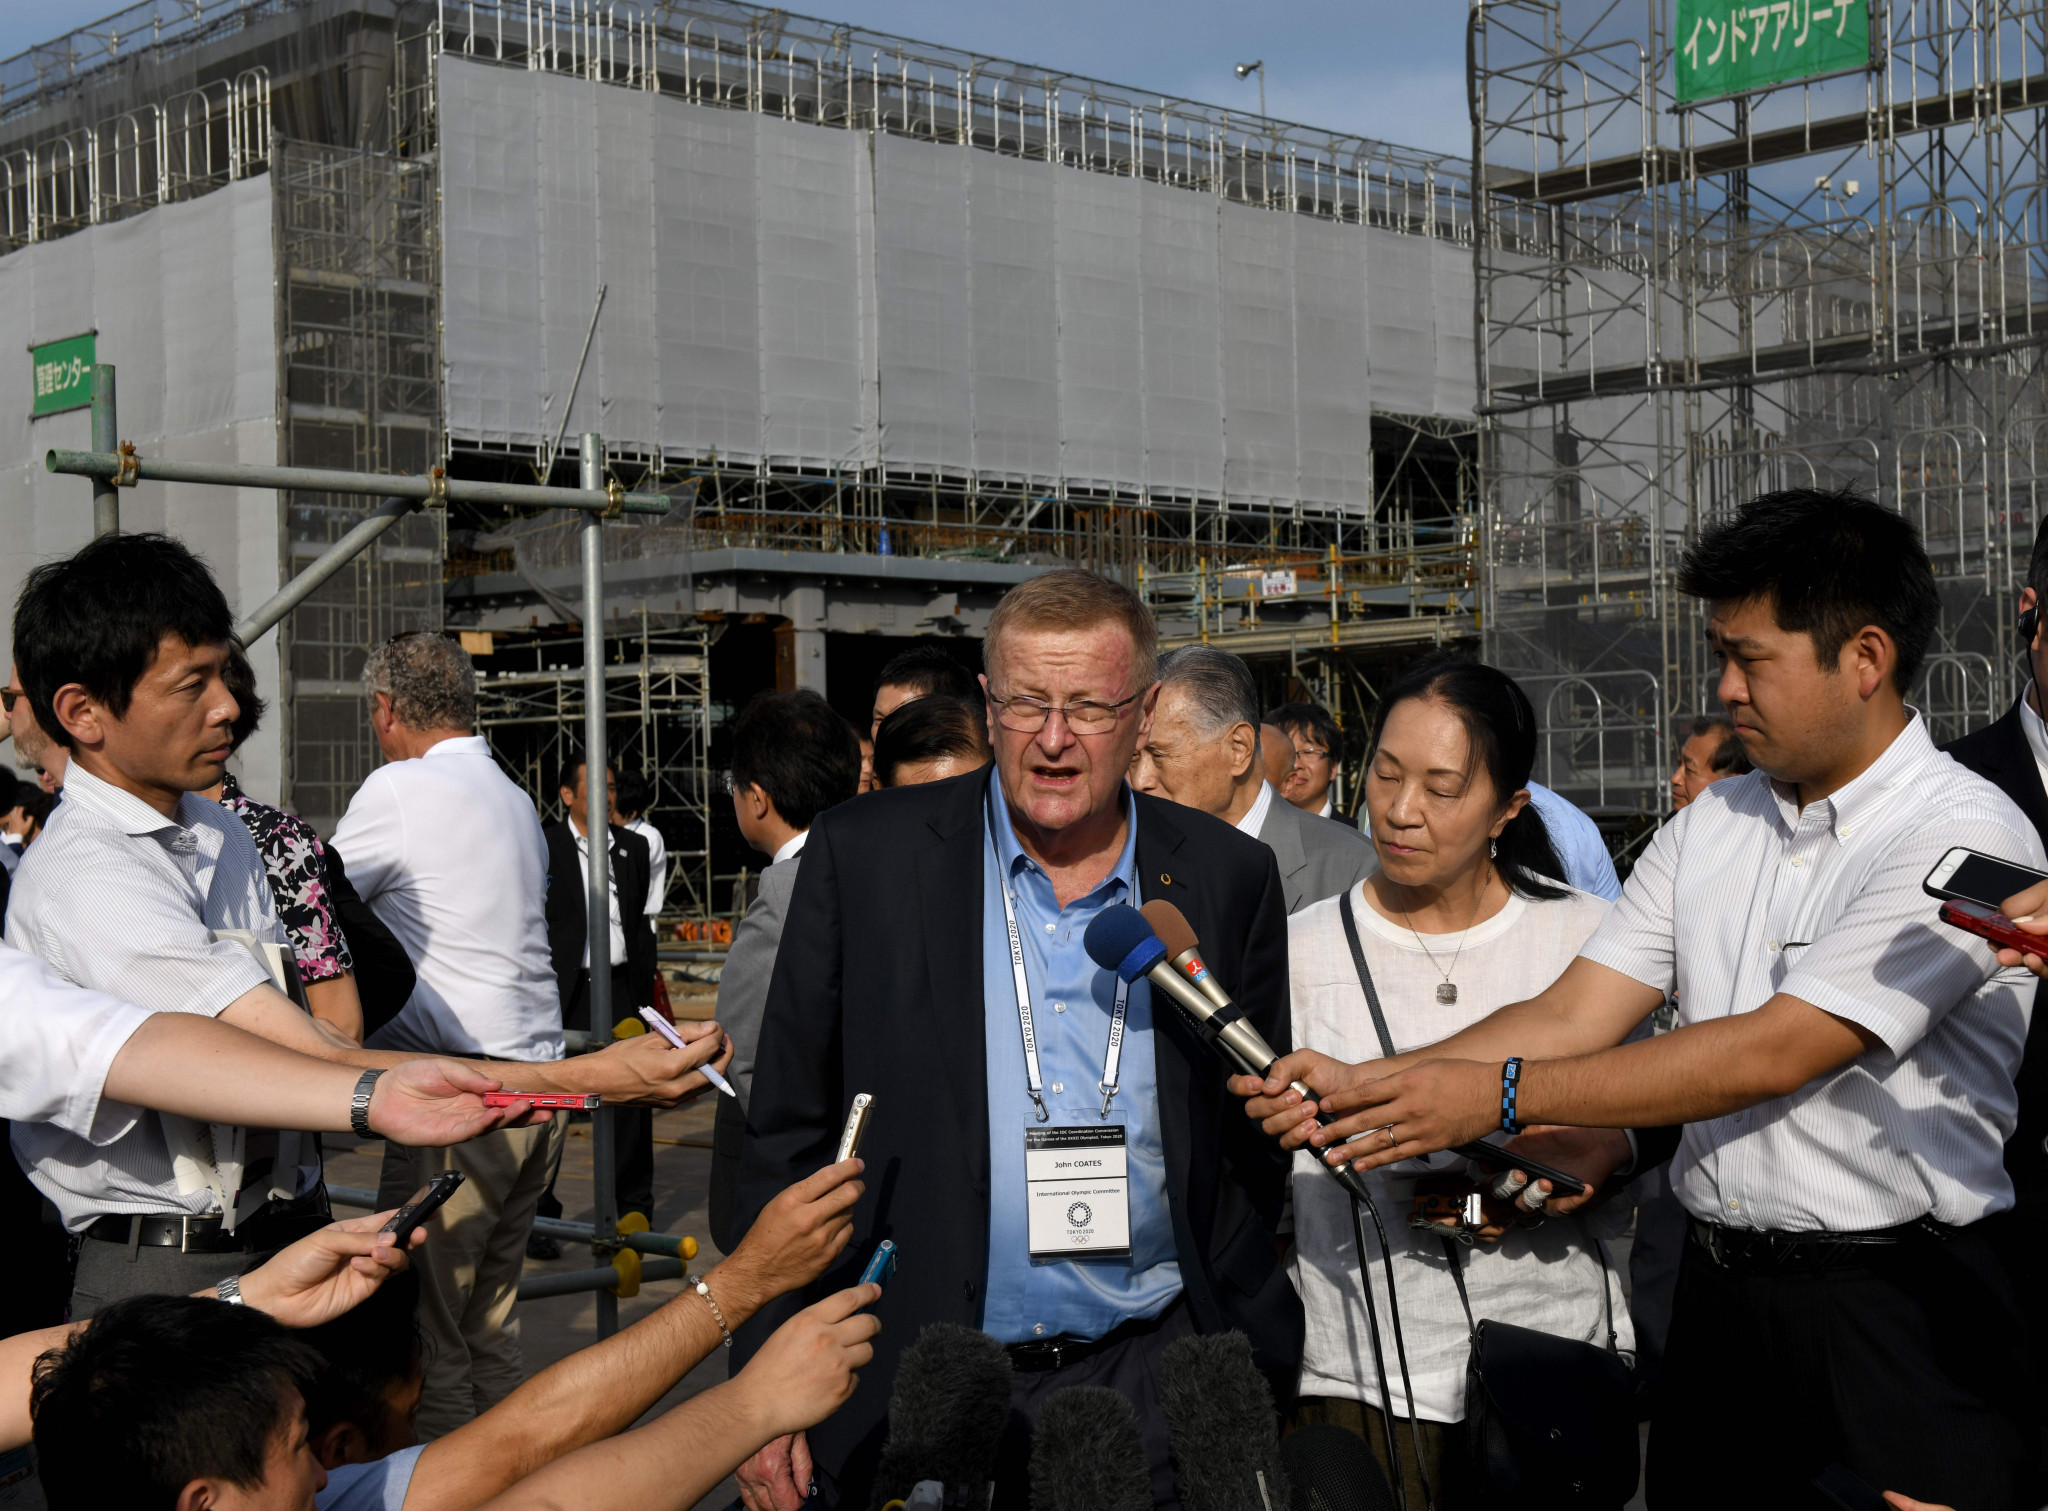 John Coates claimed the IOC were continuing to work with Tokyo 2020 to reduce costs ©Getty Images